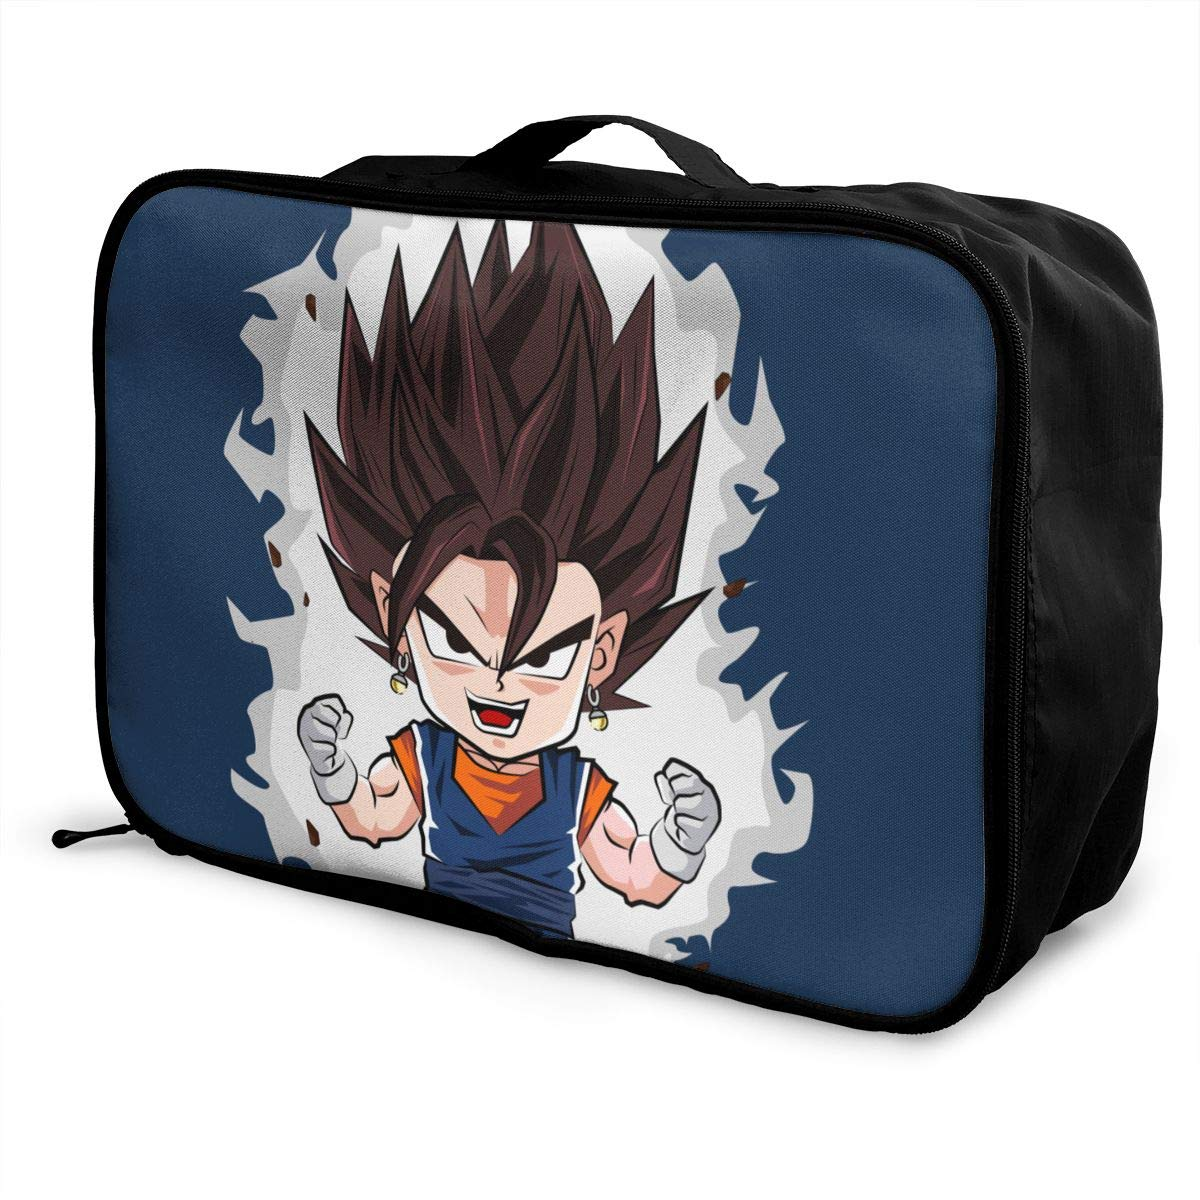 Anime Fans Dr-agon Ball Z Goku Customize Casual Portable Travel Bag Suitcase Storage Bag Luggage Packing Tote Bag Trolley Bag